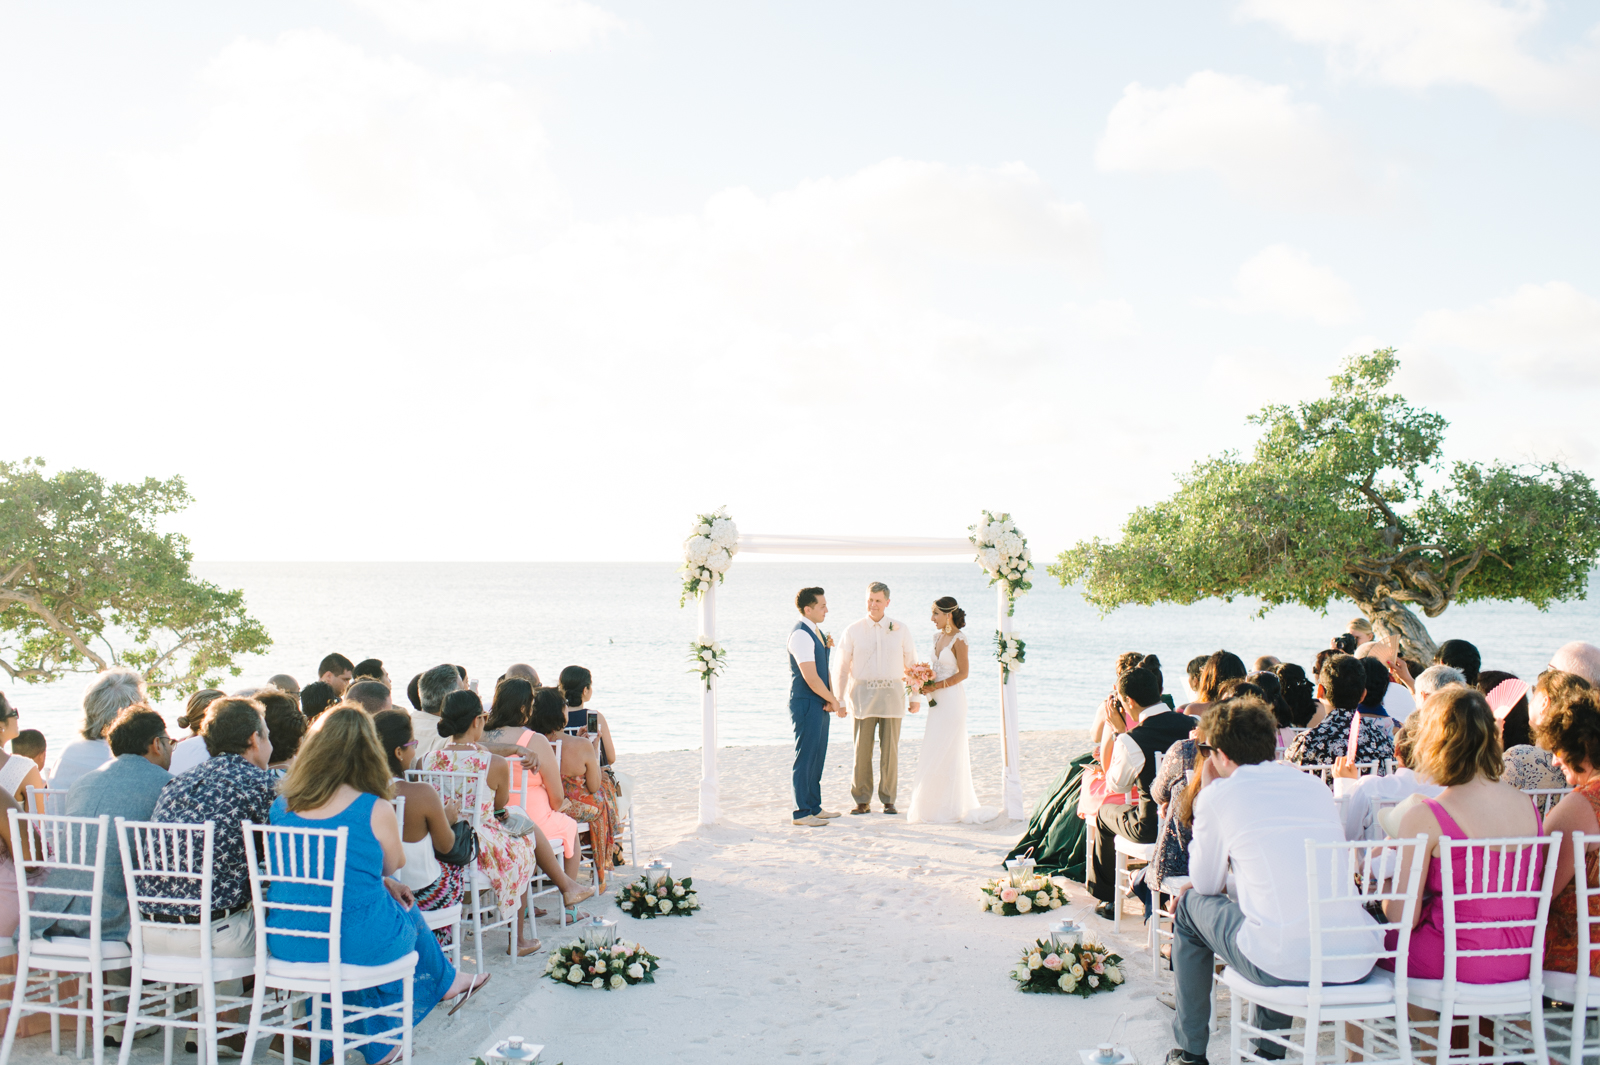 tara mcmullen photography amsterdam manor hotel wedding in aruba best wedding venue in aruba destination wedding photographer aruba indian wedding in aruba-025